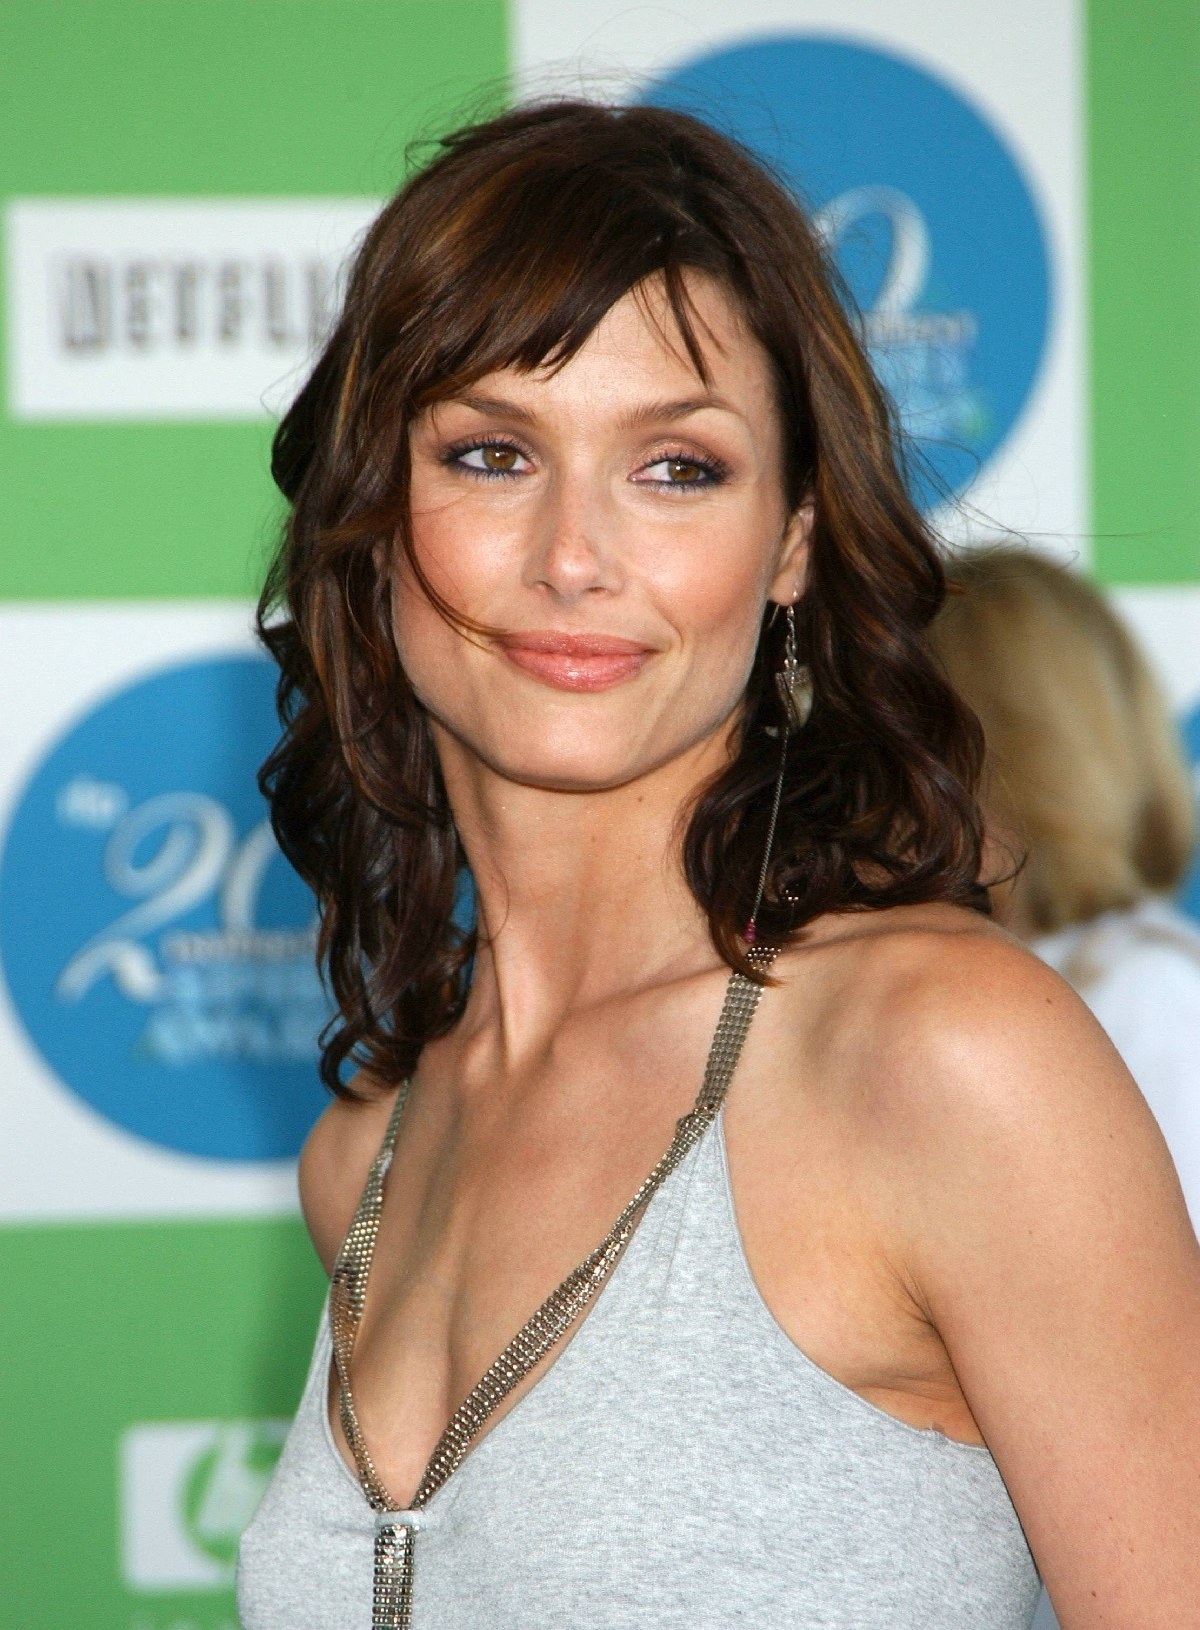 Happy birthday, Bridget Moynahan!